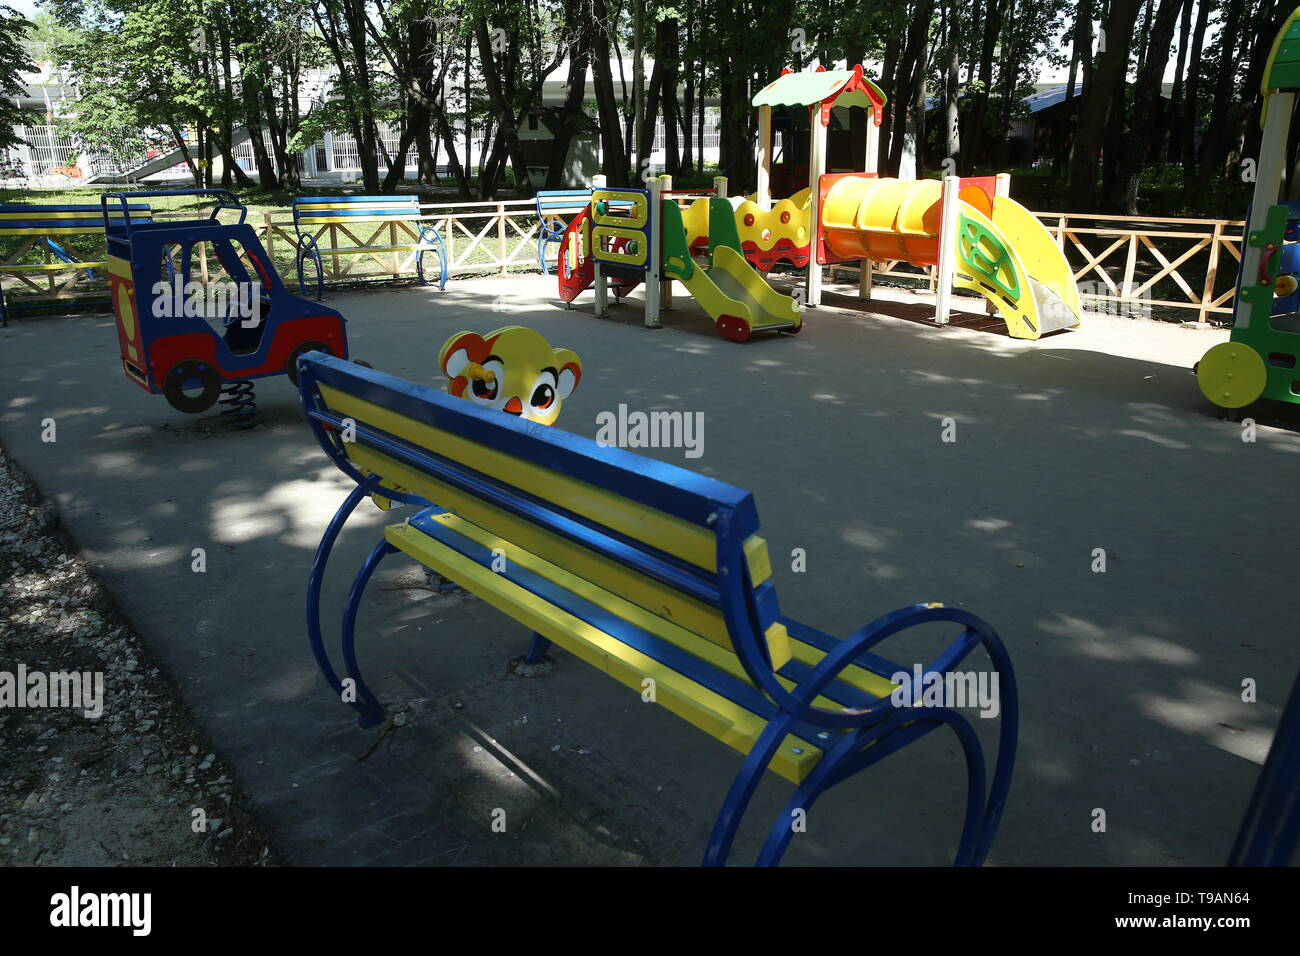 Ryazan, Russia. 17th May, 2019. RYAZAN, RUSSIA - MAY 17, 2019: A children's playground in Ryazan's Lesopark. On May 16, 2019, journalists complained to Russian President Vladimir Putin about the absence of a children's playground which had been largely funded by the city budget. Alexander Ryumin/TASS Credit: ITAR-TASS News Agency/Alamy Live News - Stock Image